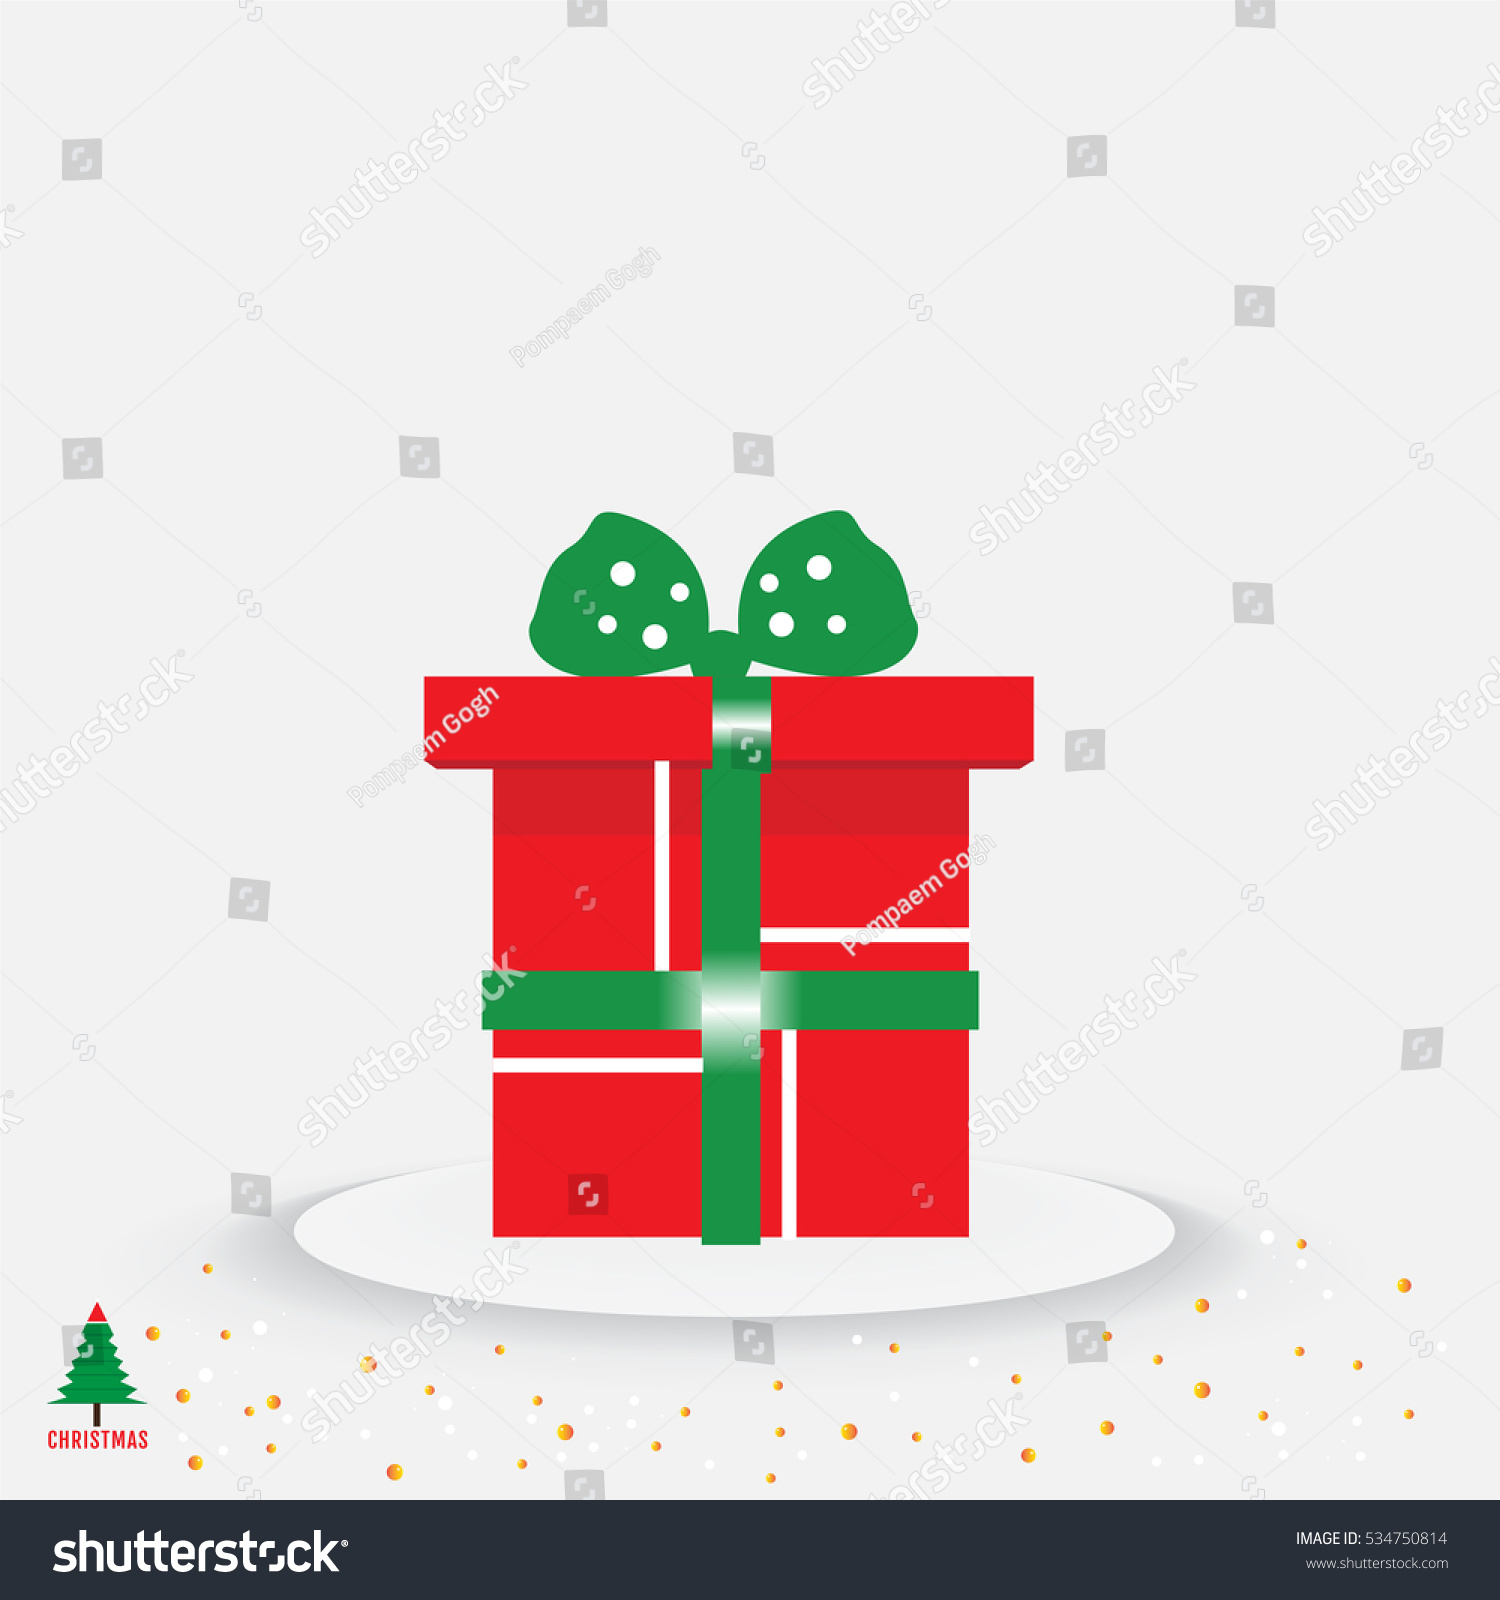 Christmas Tree And Present With Green Ribbon Bow On White